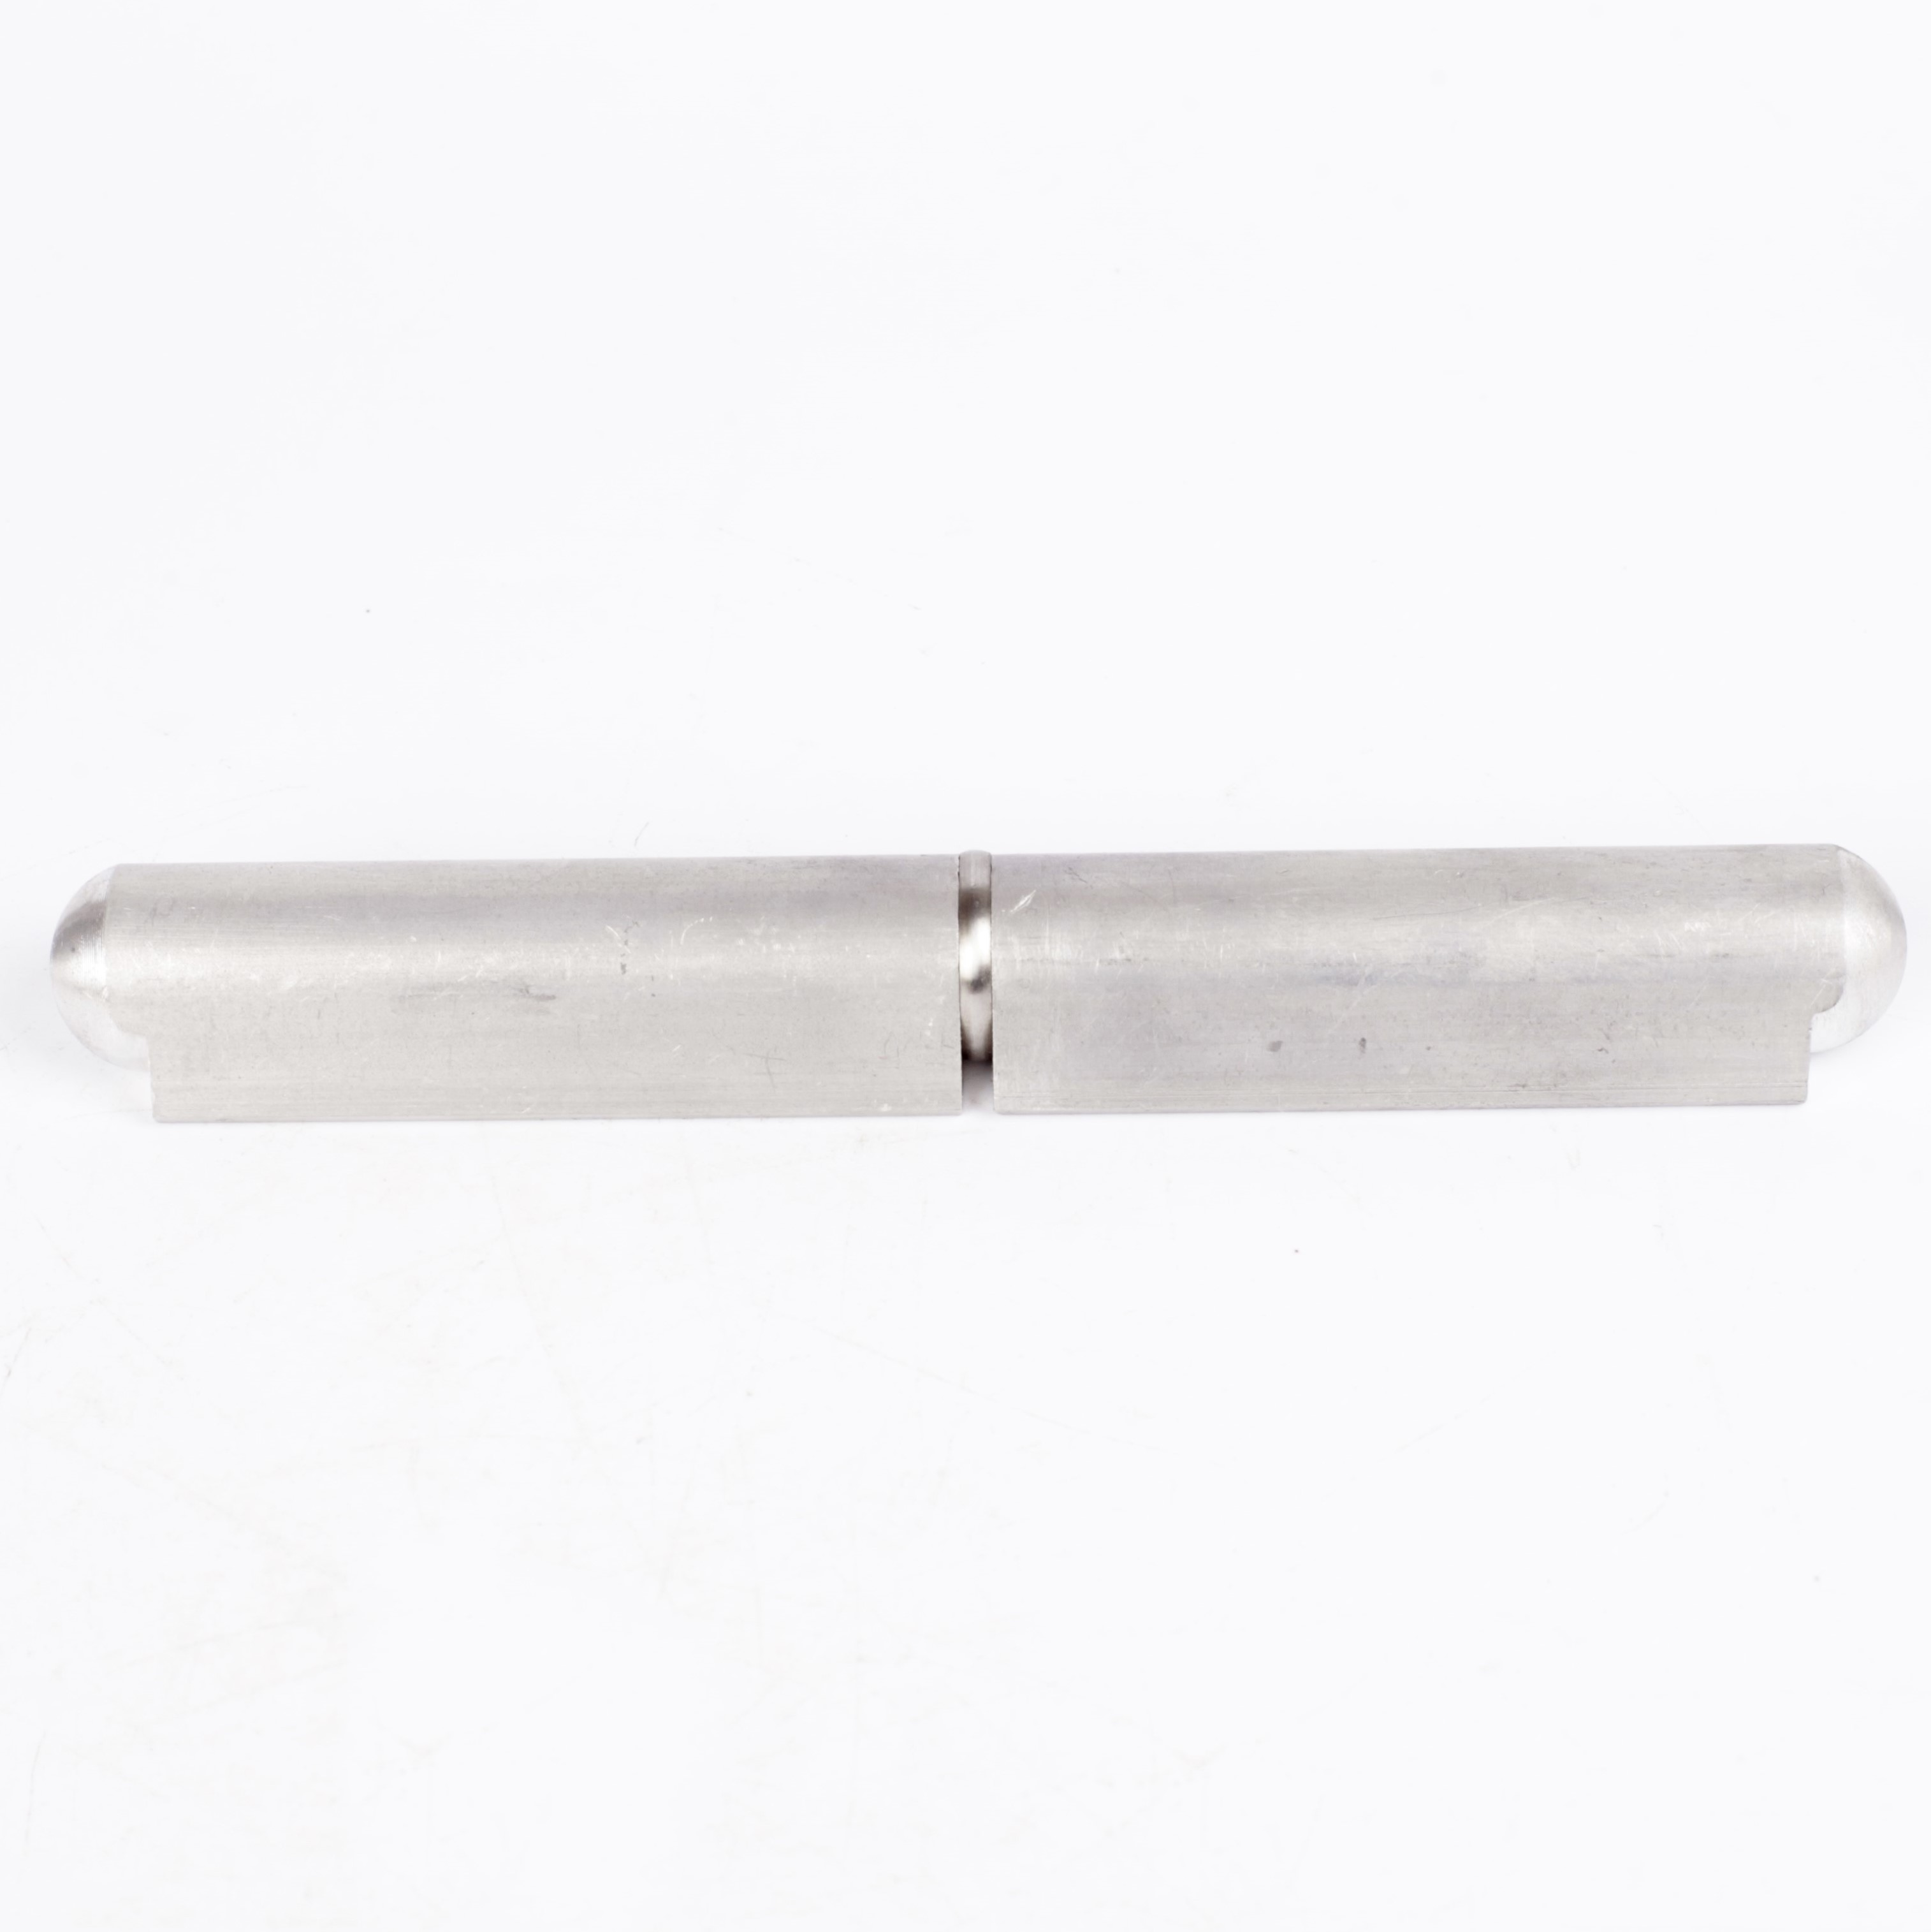 Aluminum Material Bullet Hinges without Grease Zerk